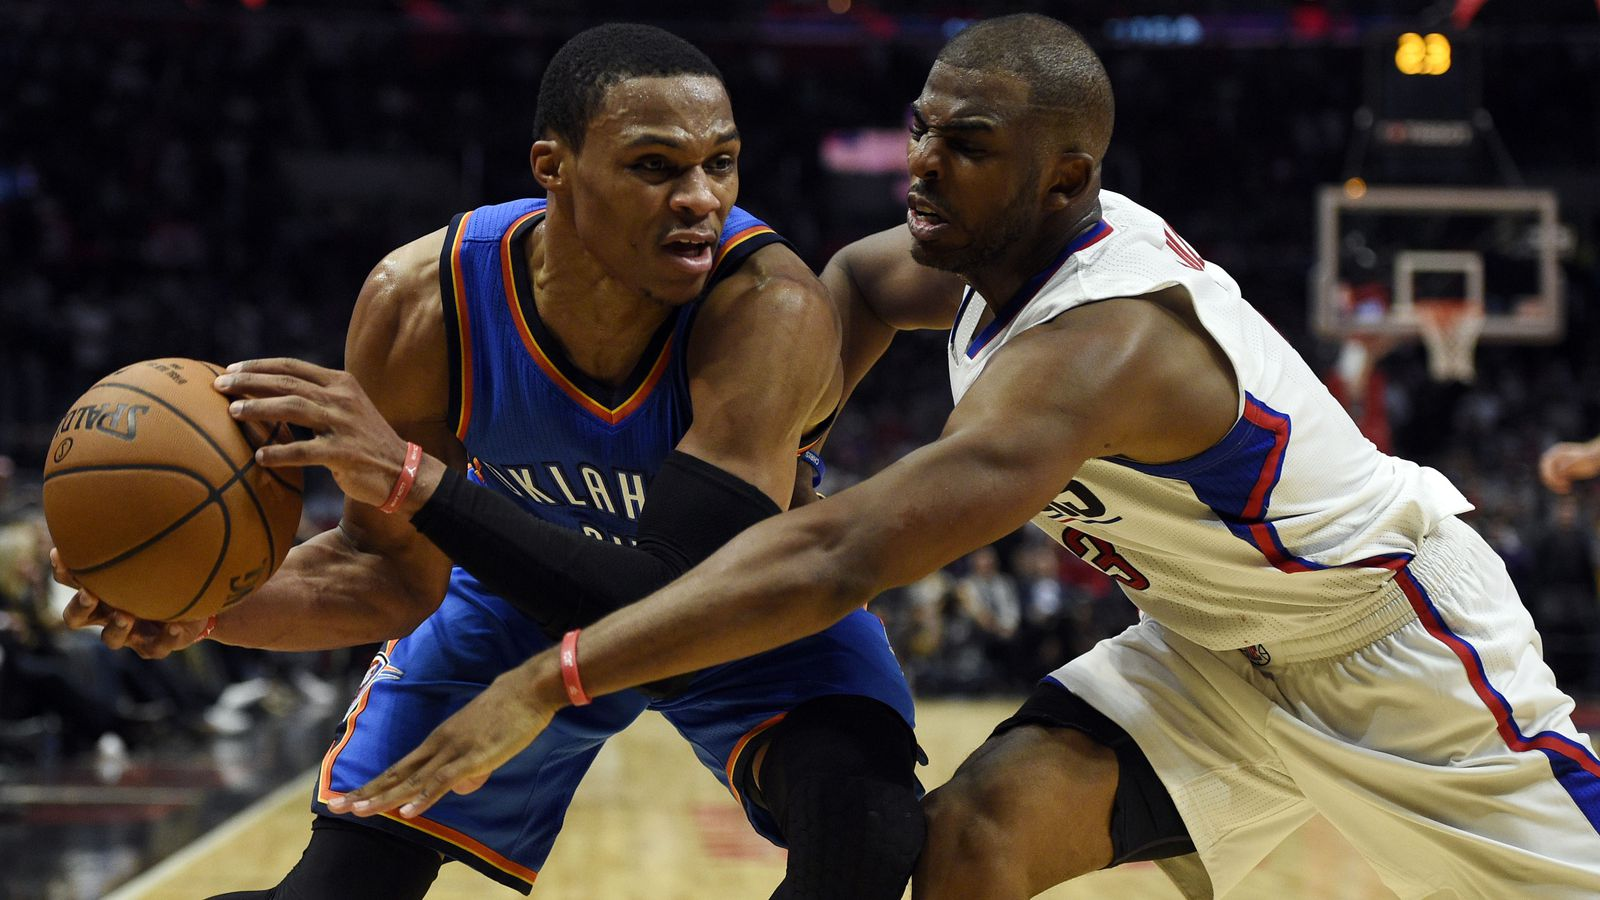 Preview: Clippers out for revenge against Thunder